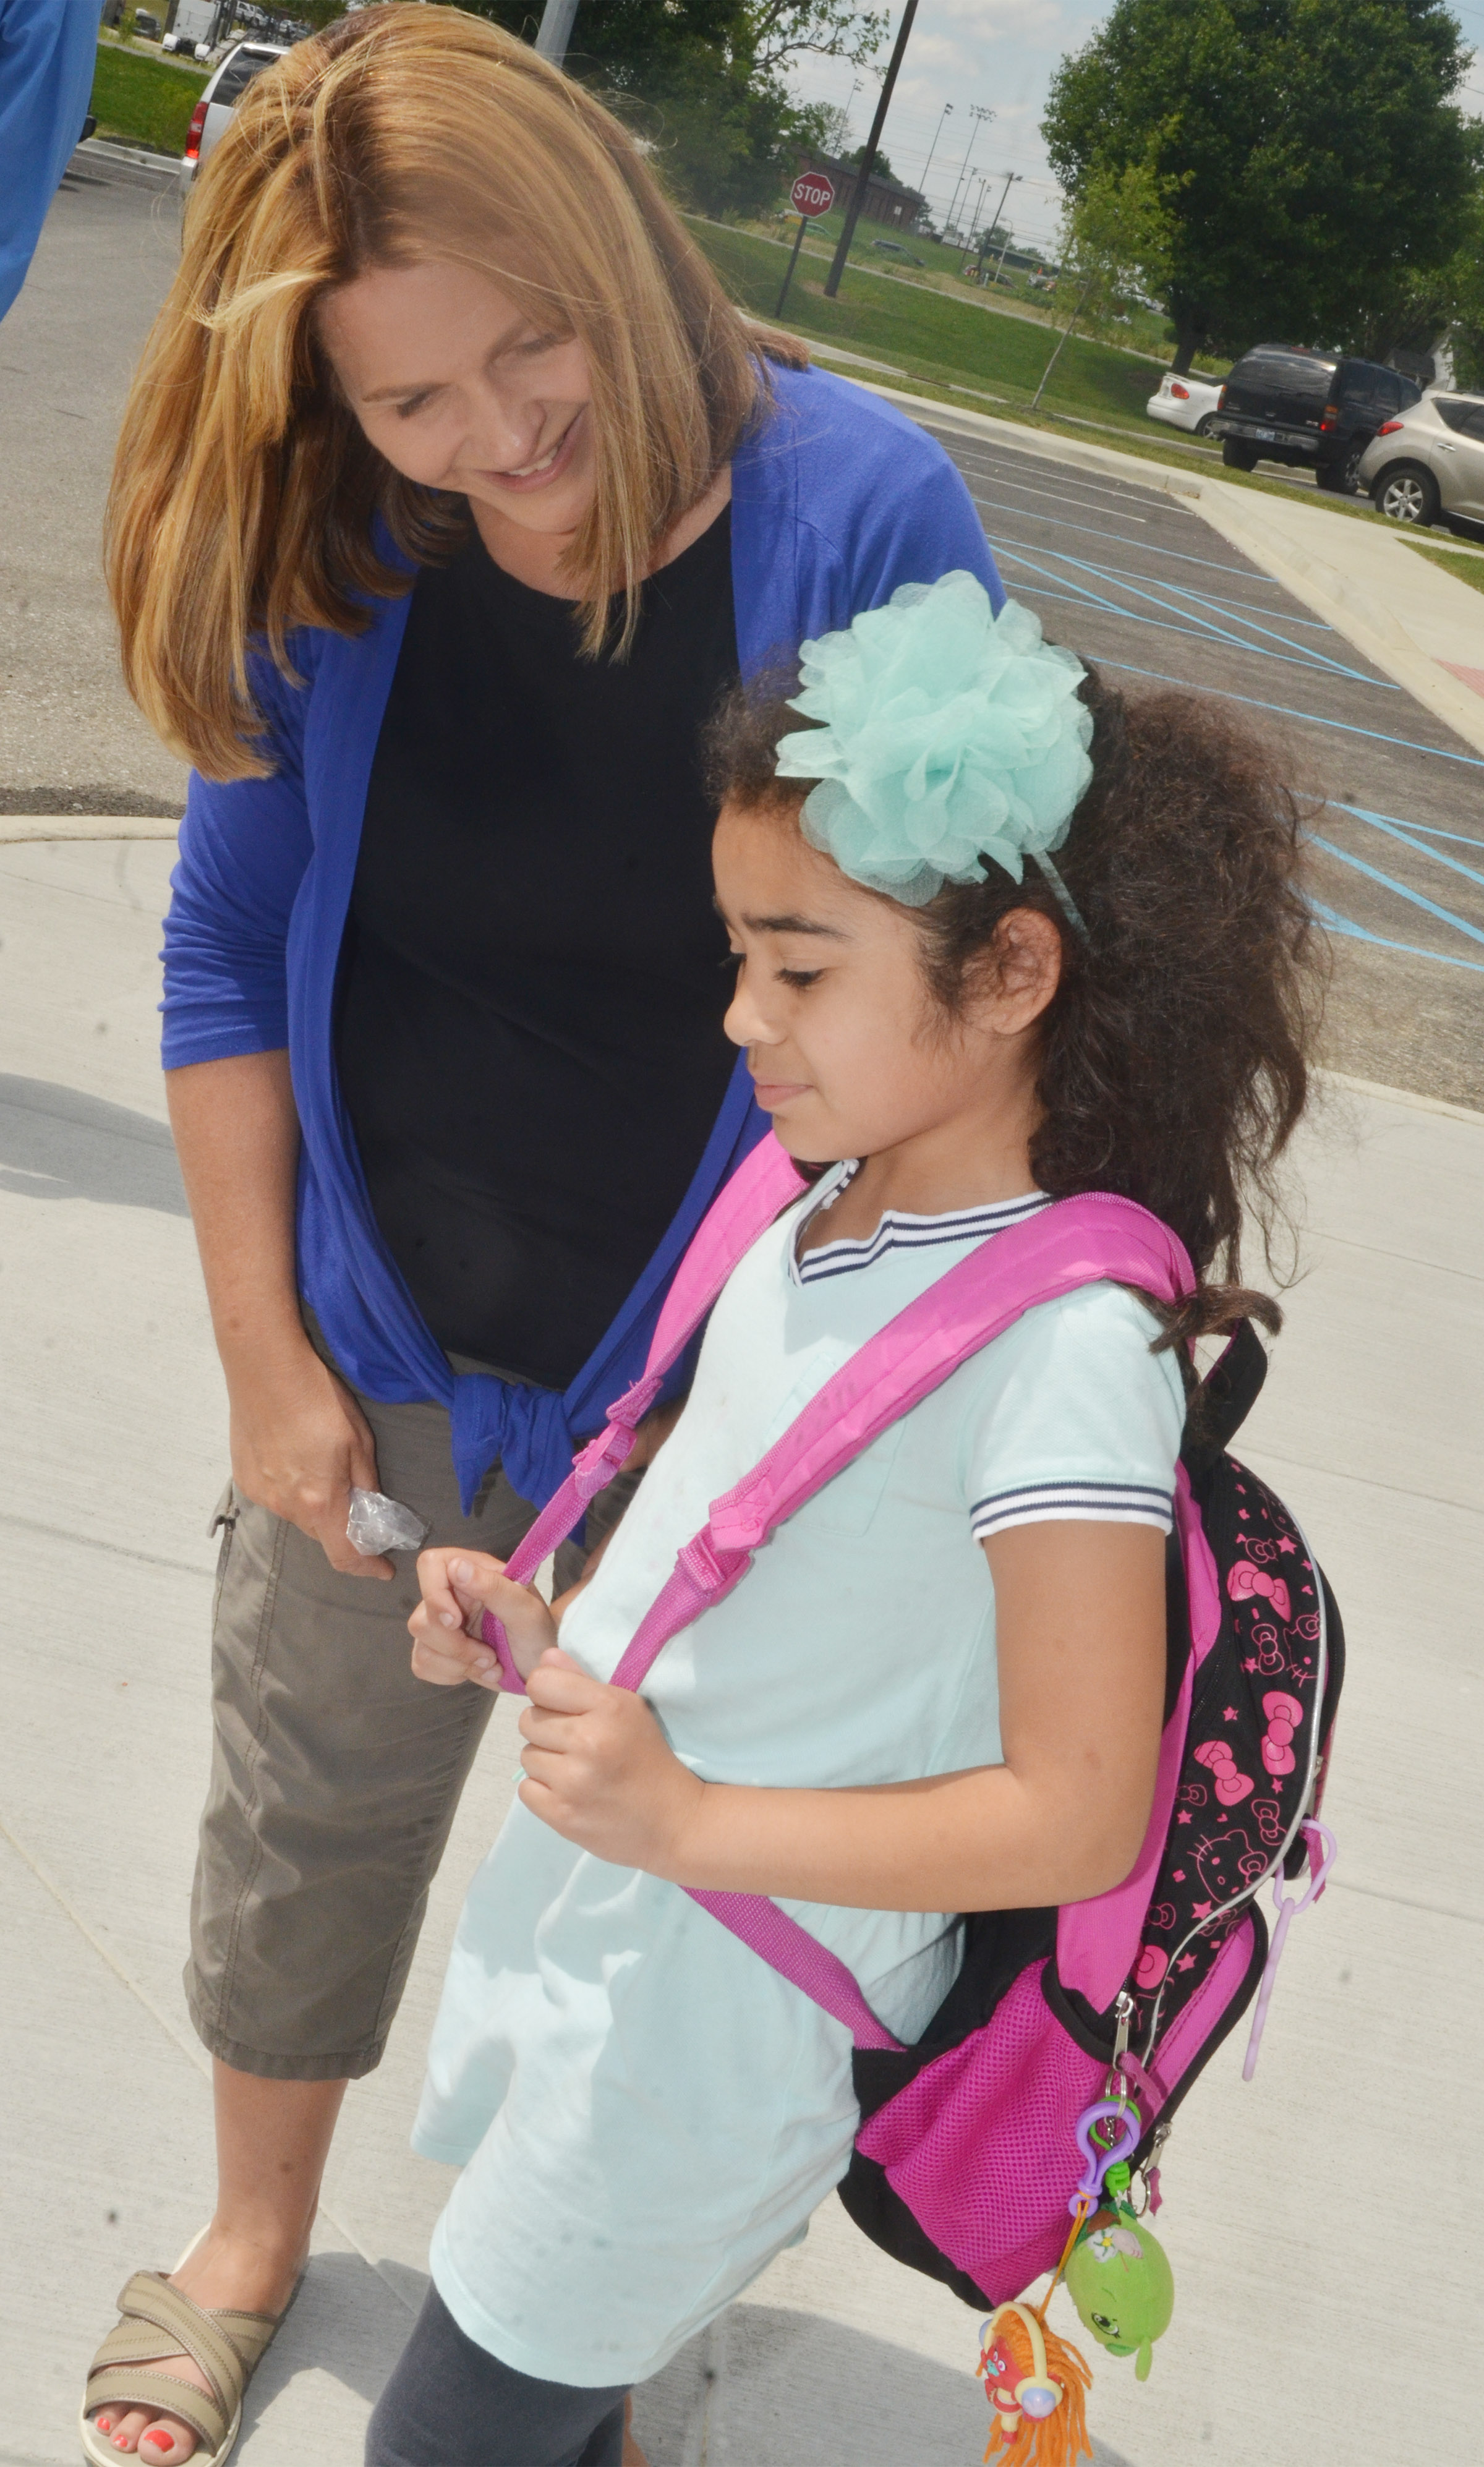 CES Guidance Counselor Sonya Orberson talks to second-grader Sophia Santos as she waits for her ride home.